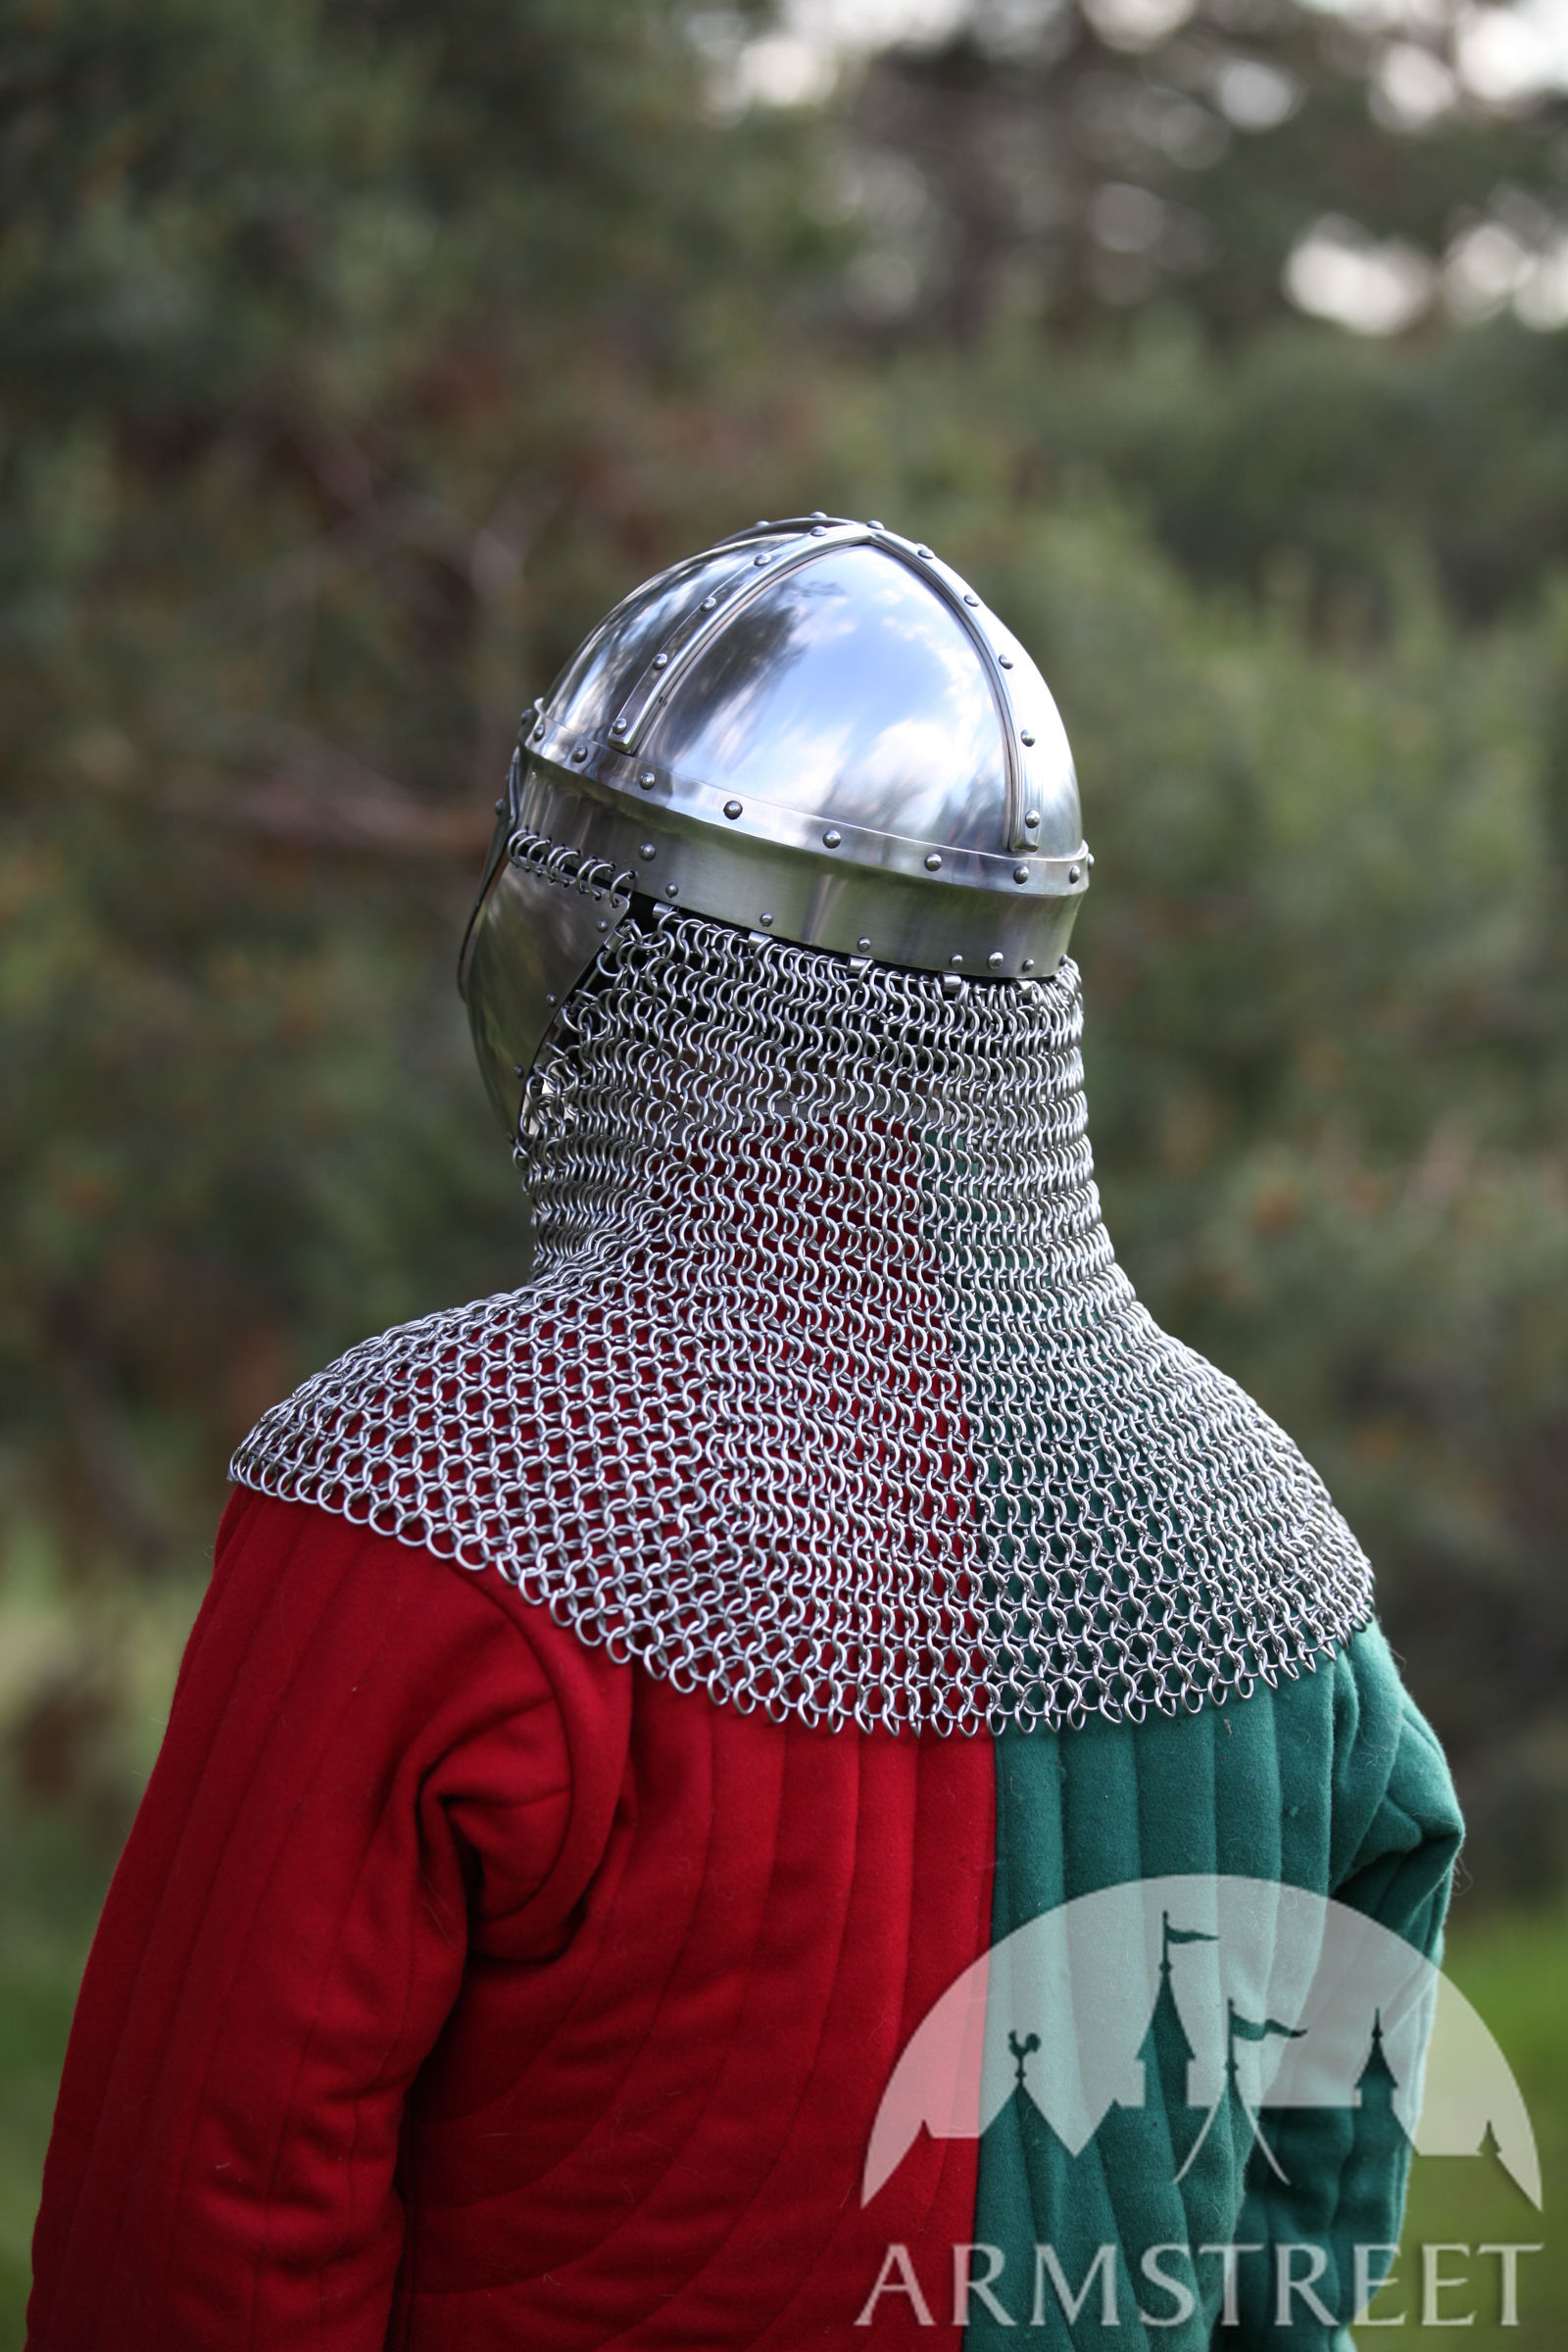 Viking Helmet For Sale. Available In: Stainless Steel 16